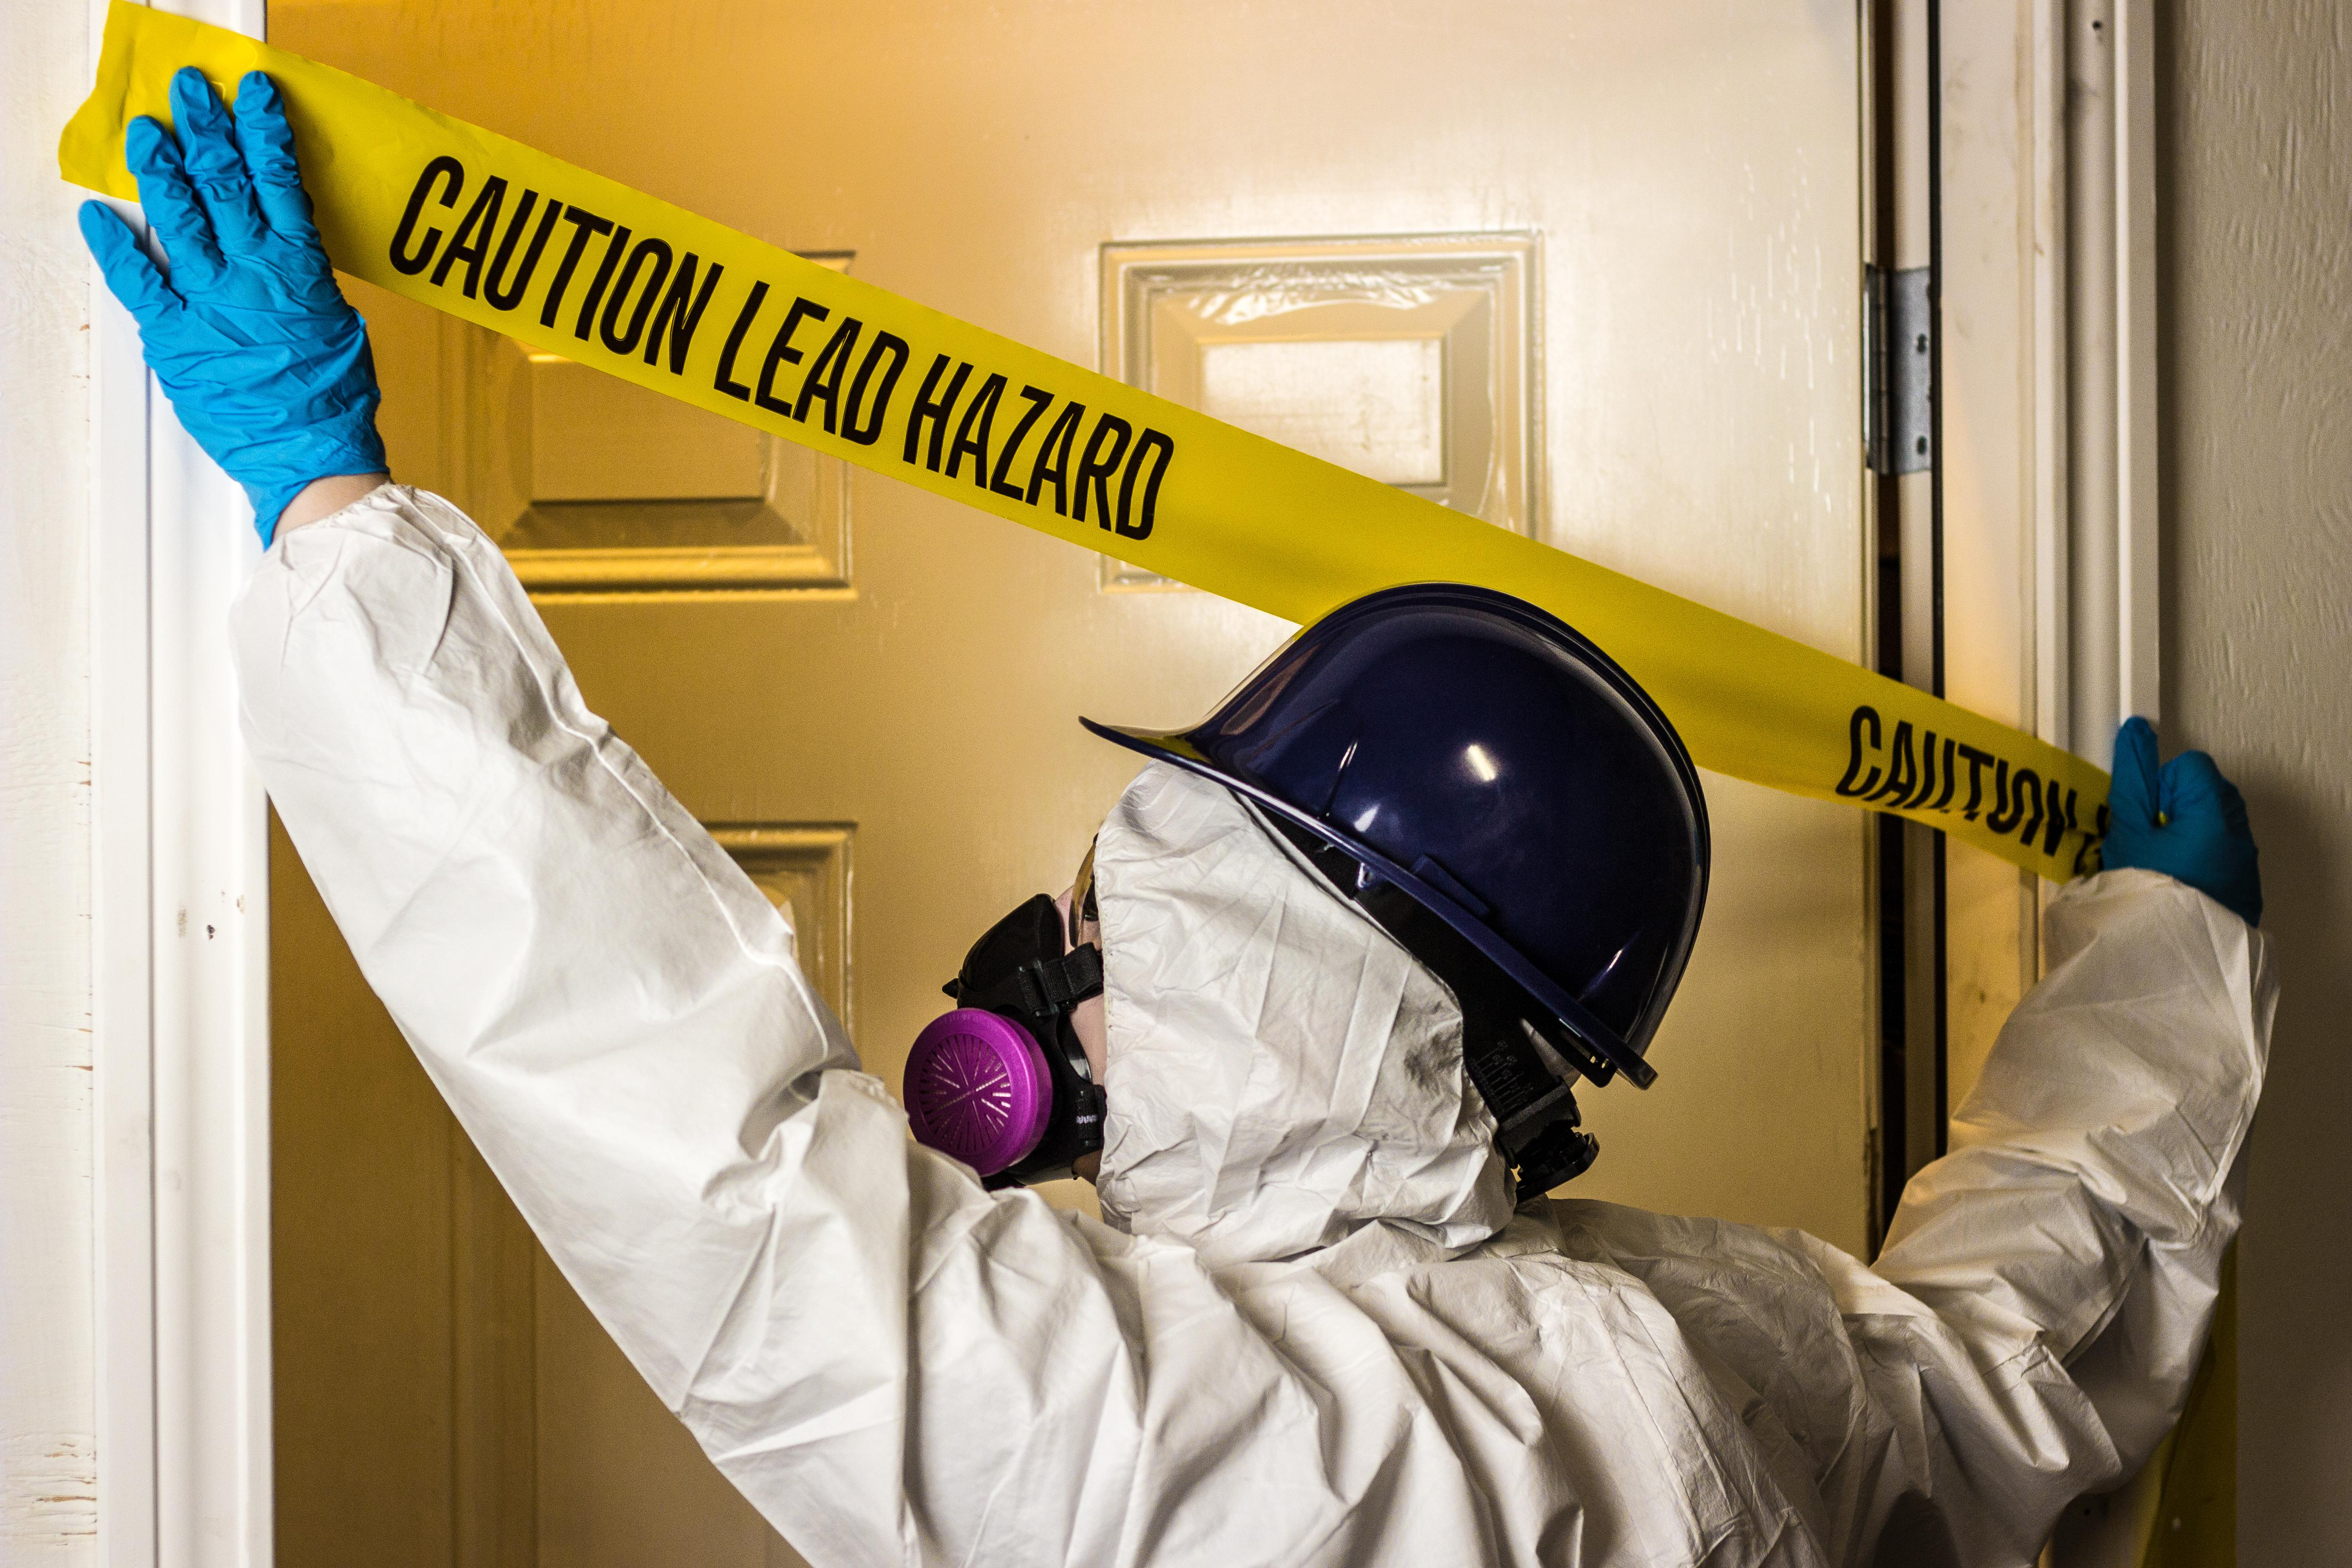 [lead paint removal]